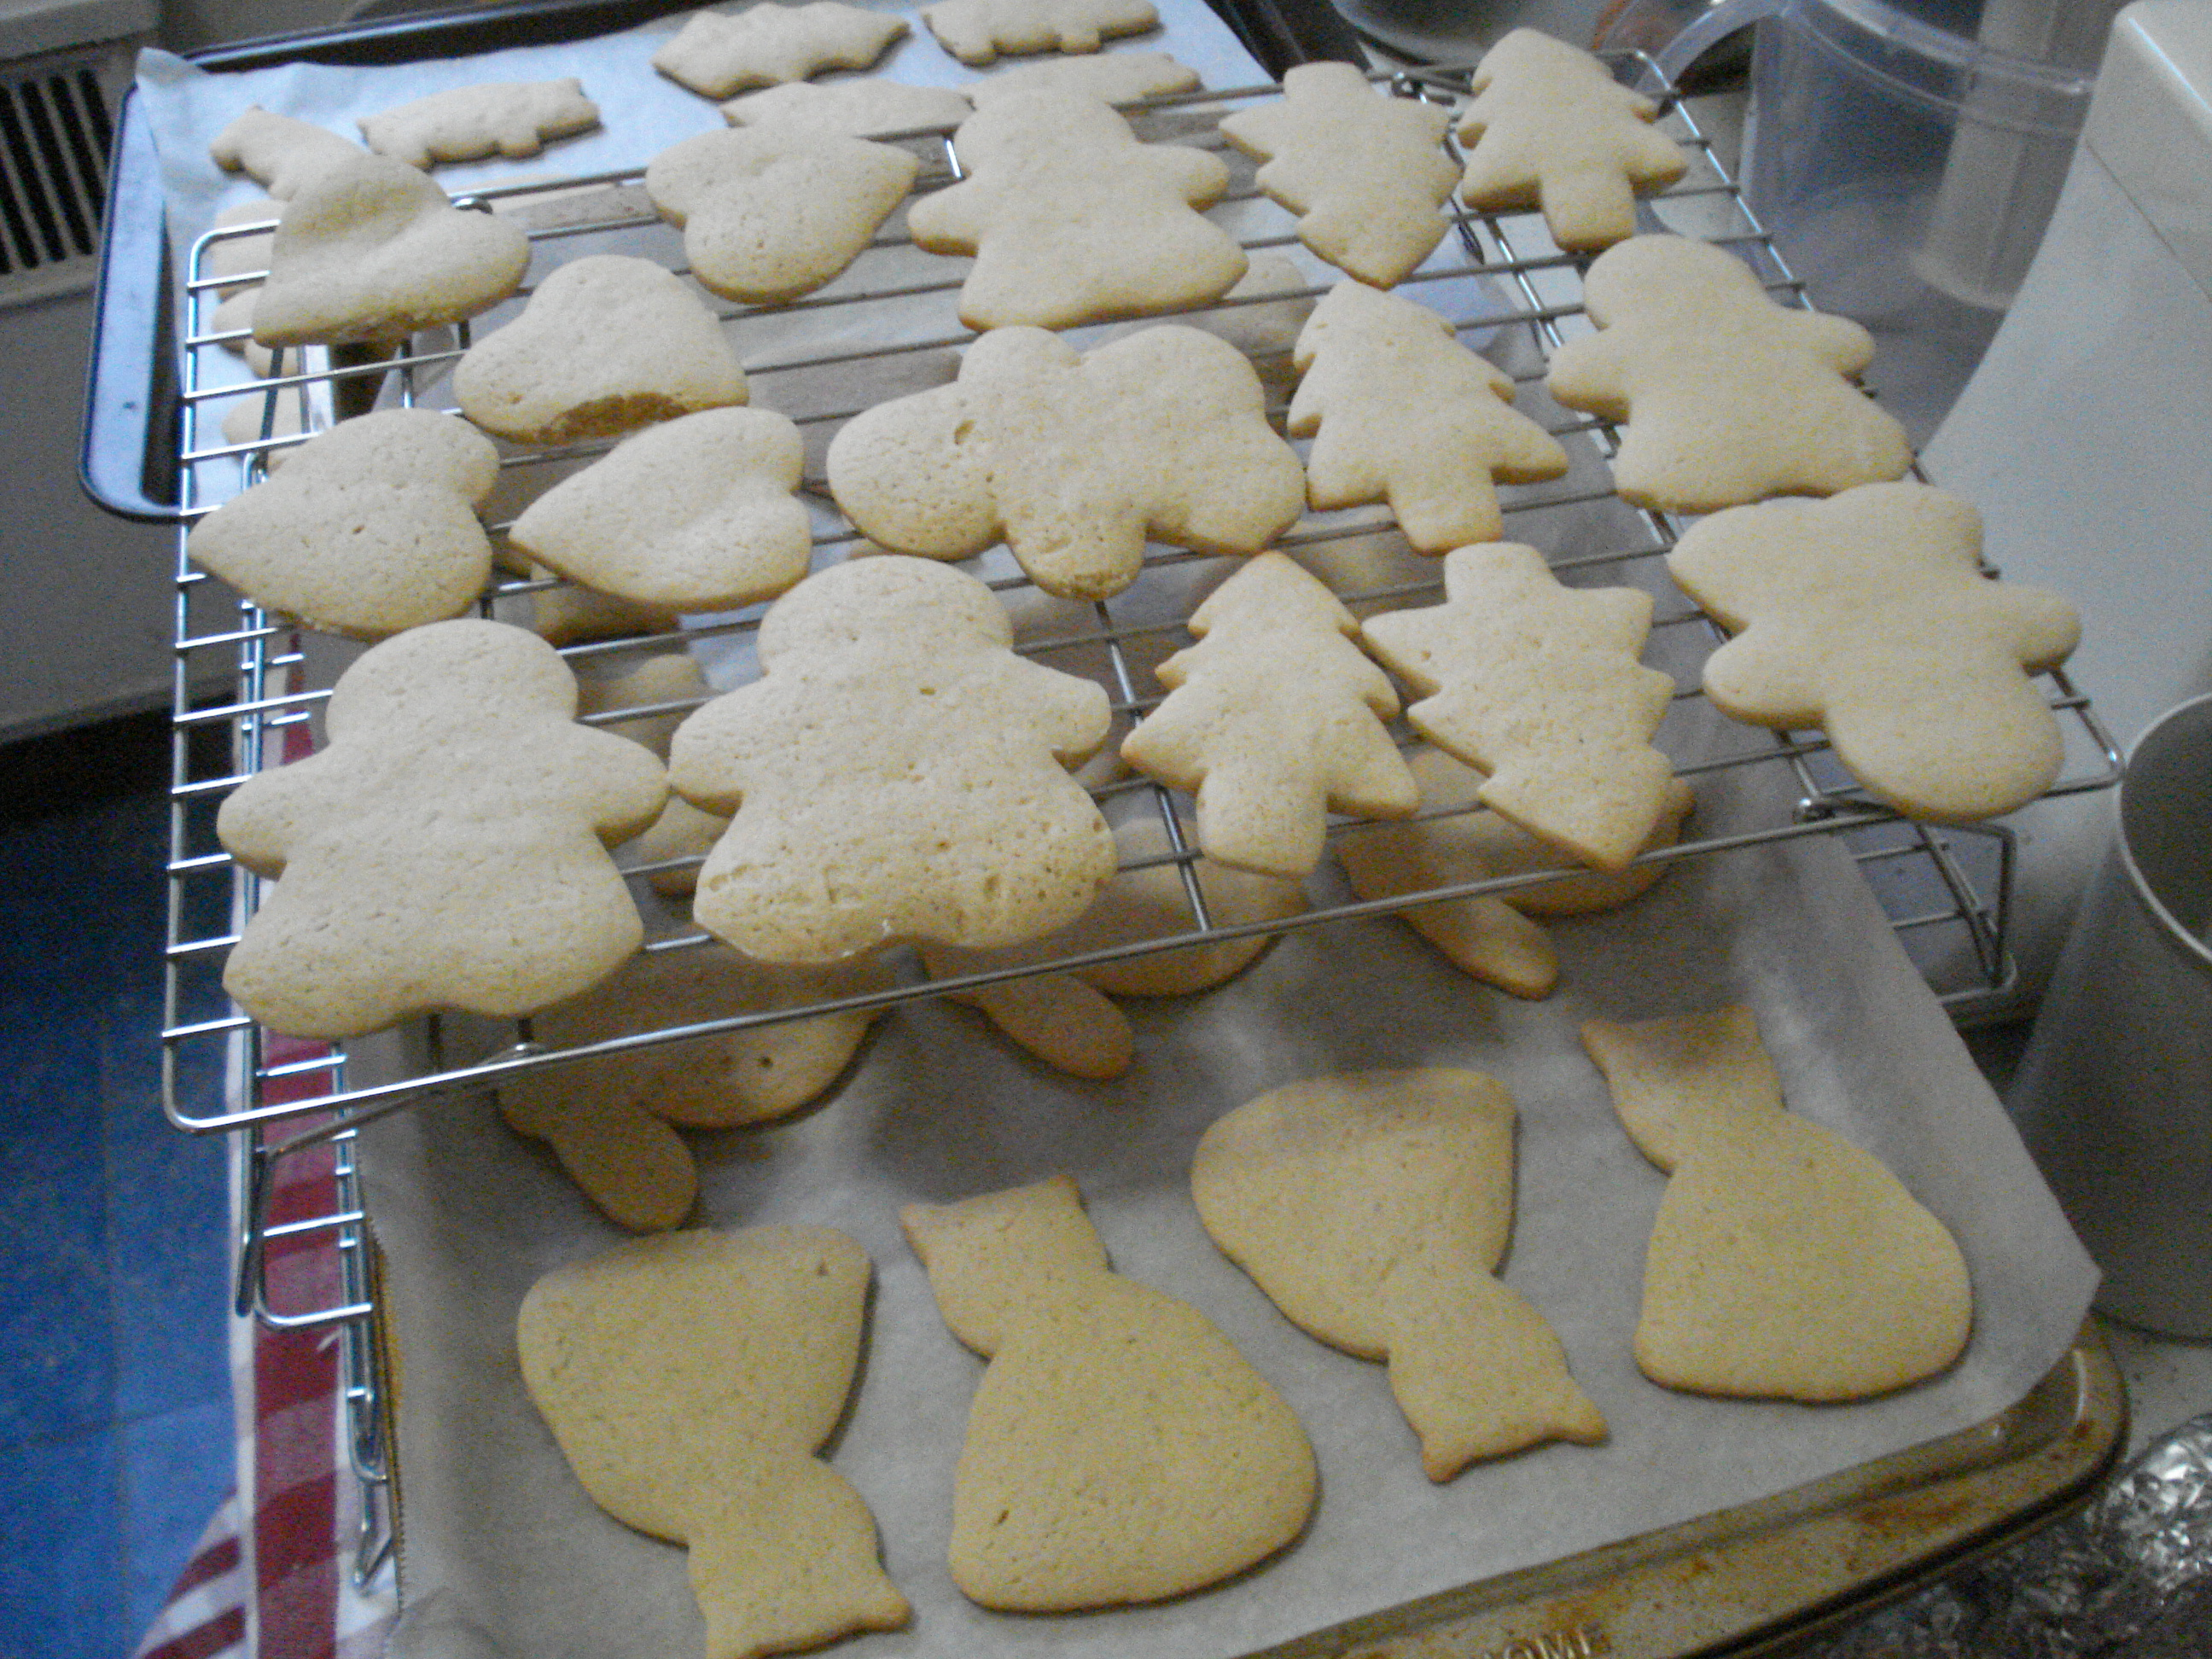 Sugar Cookies On a Tray